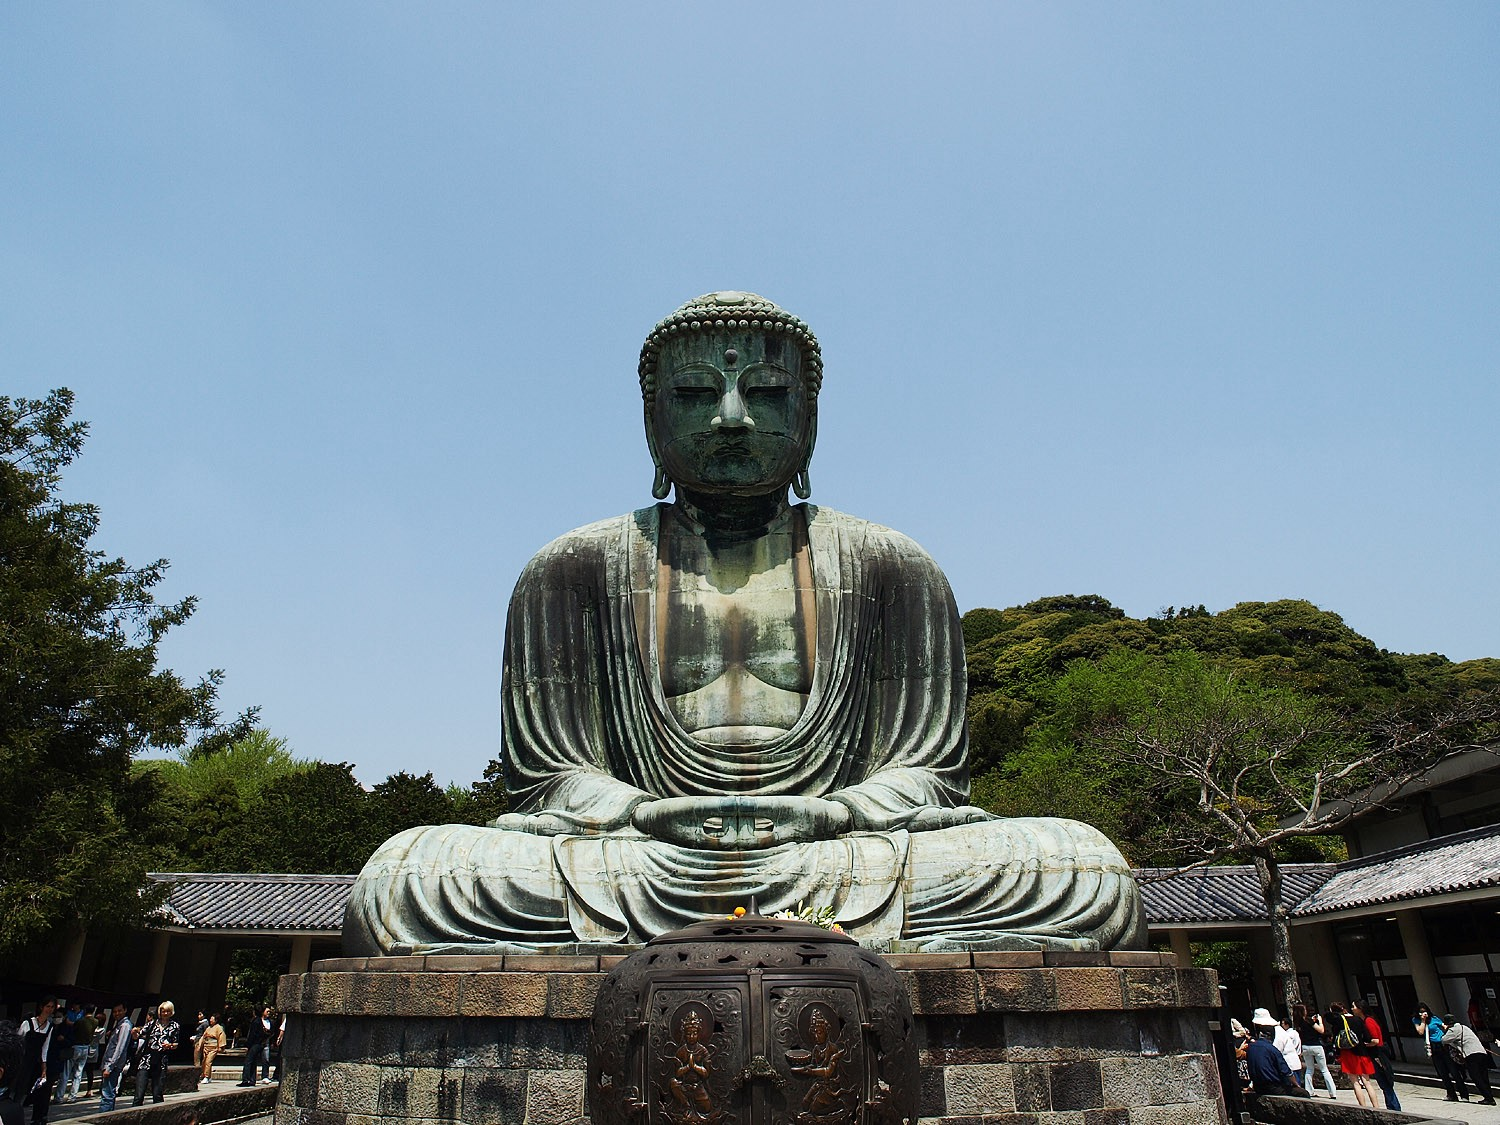 The Great Buddha at Kotokuin Temple in Kamakura